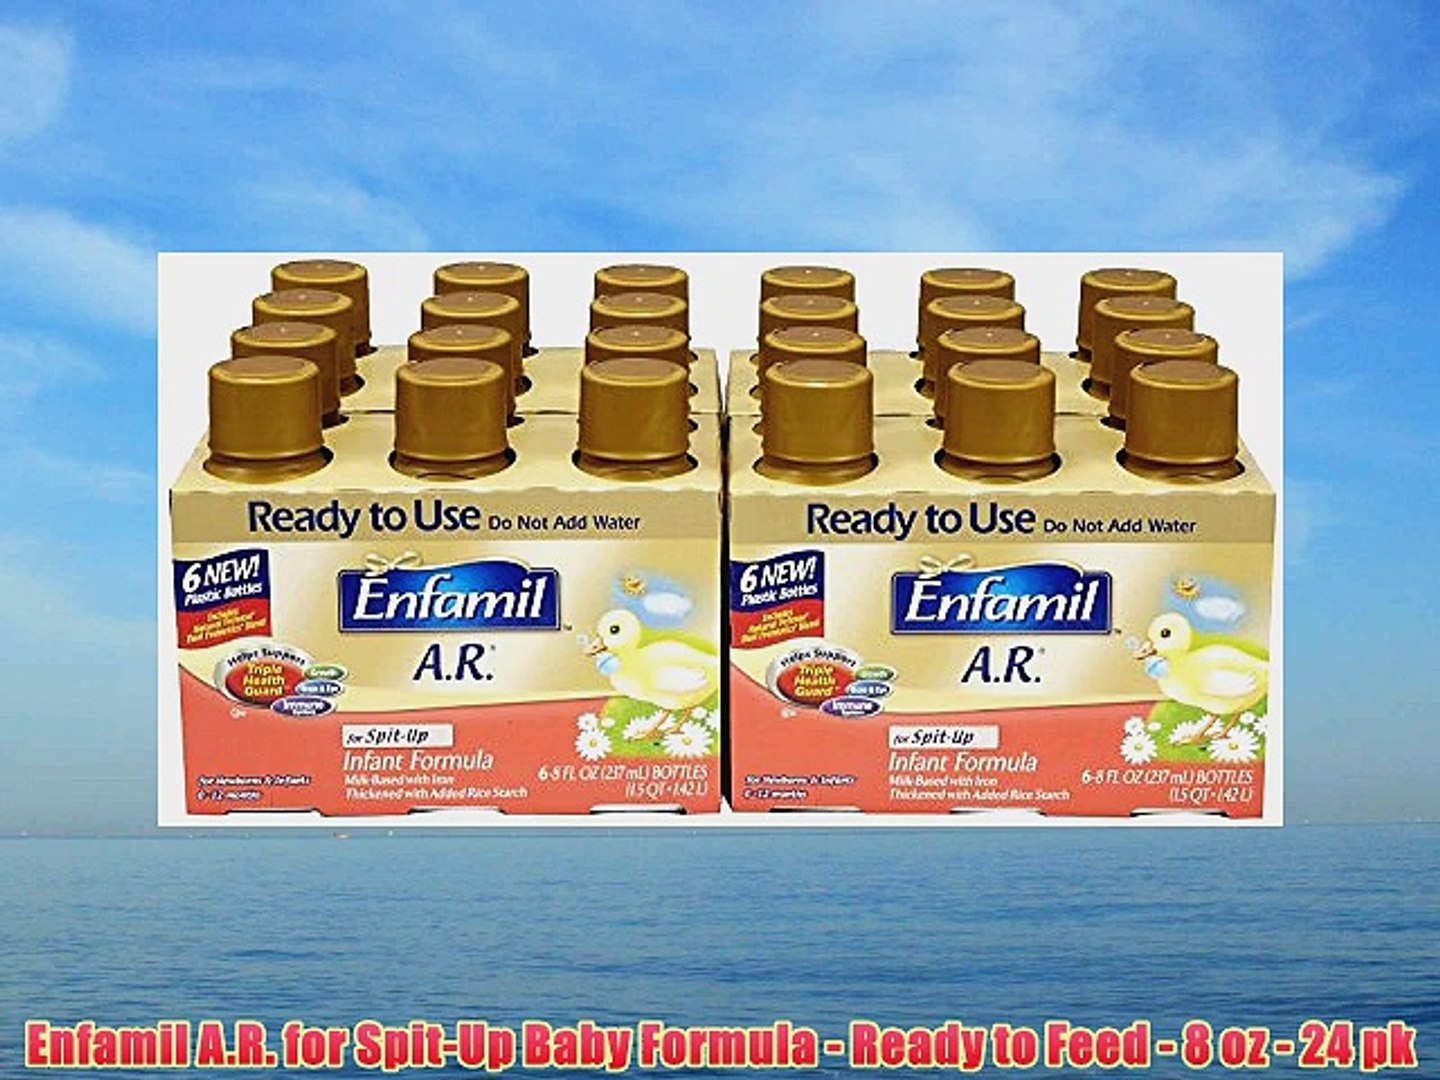 Alimentum Ready To Feed 2 Oz enfamil a.r. for spit-up baby formula - ready to feed - 8 oz